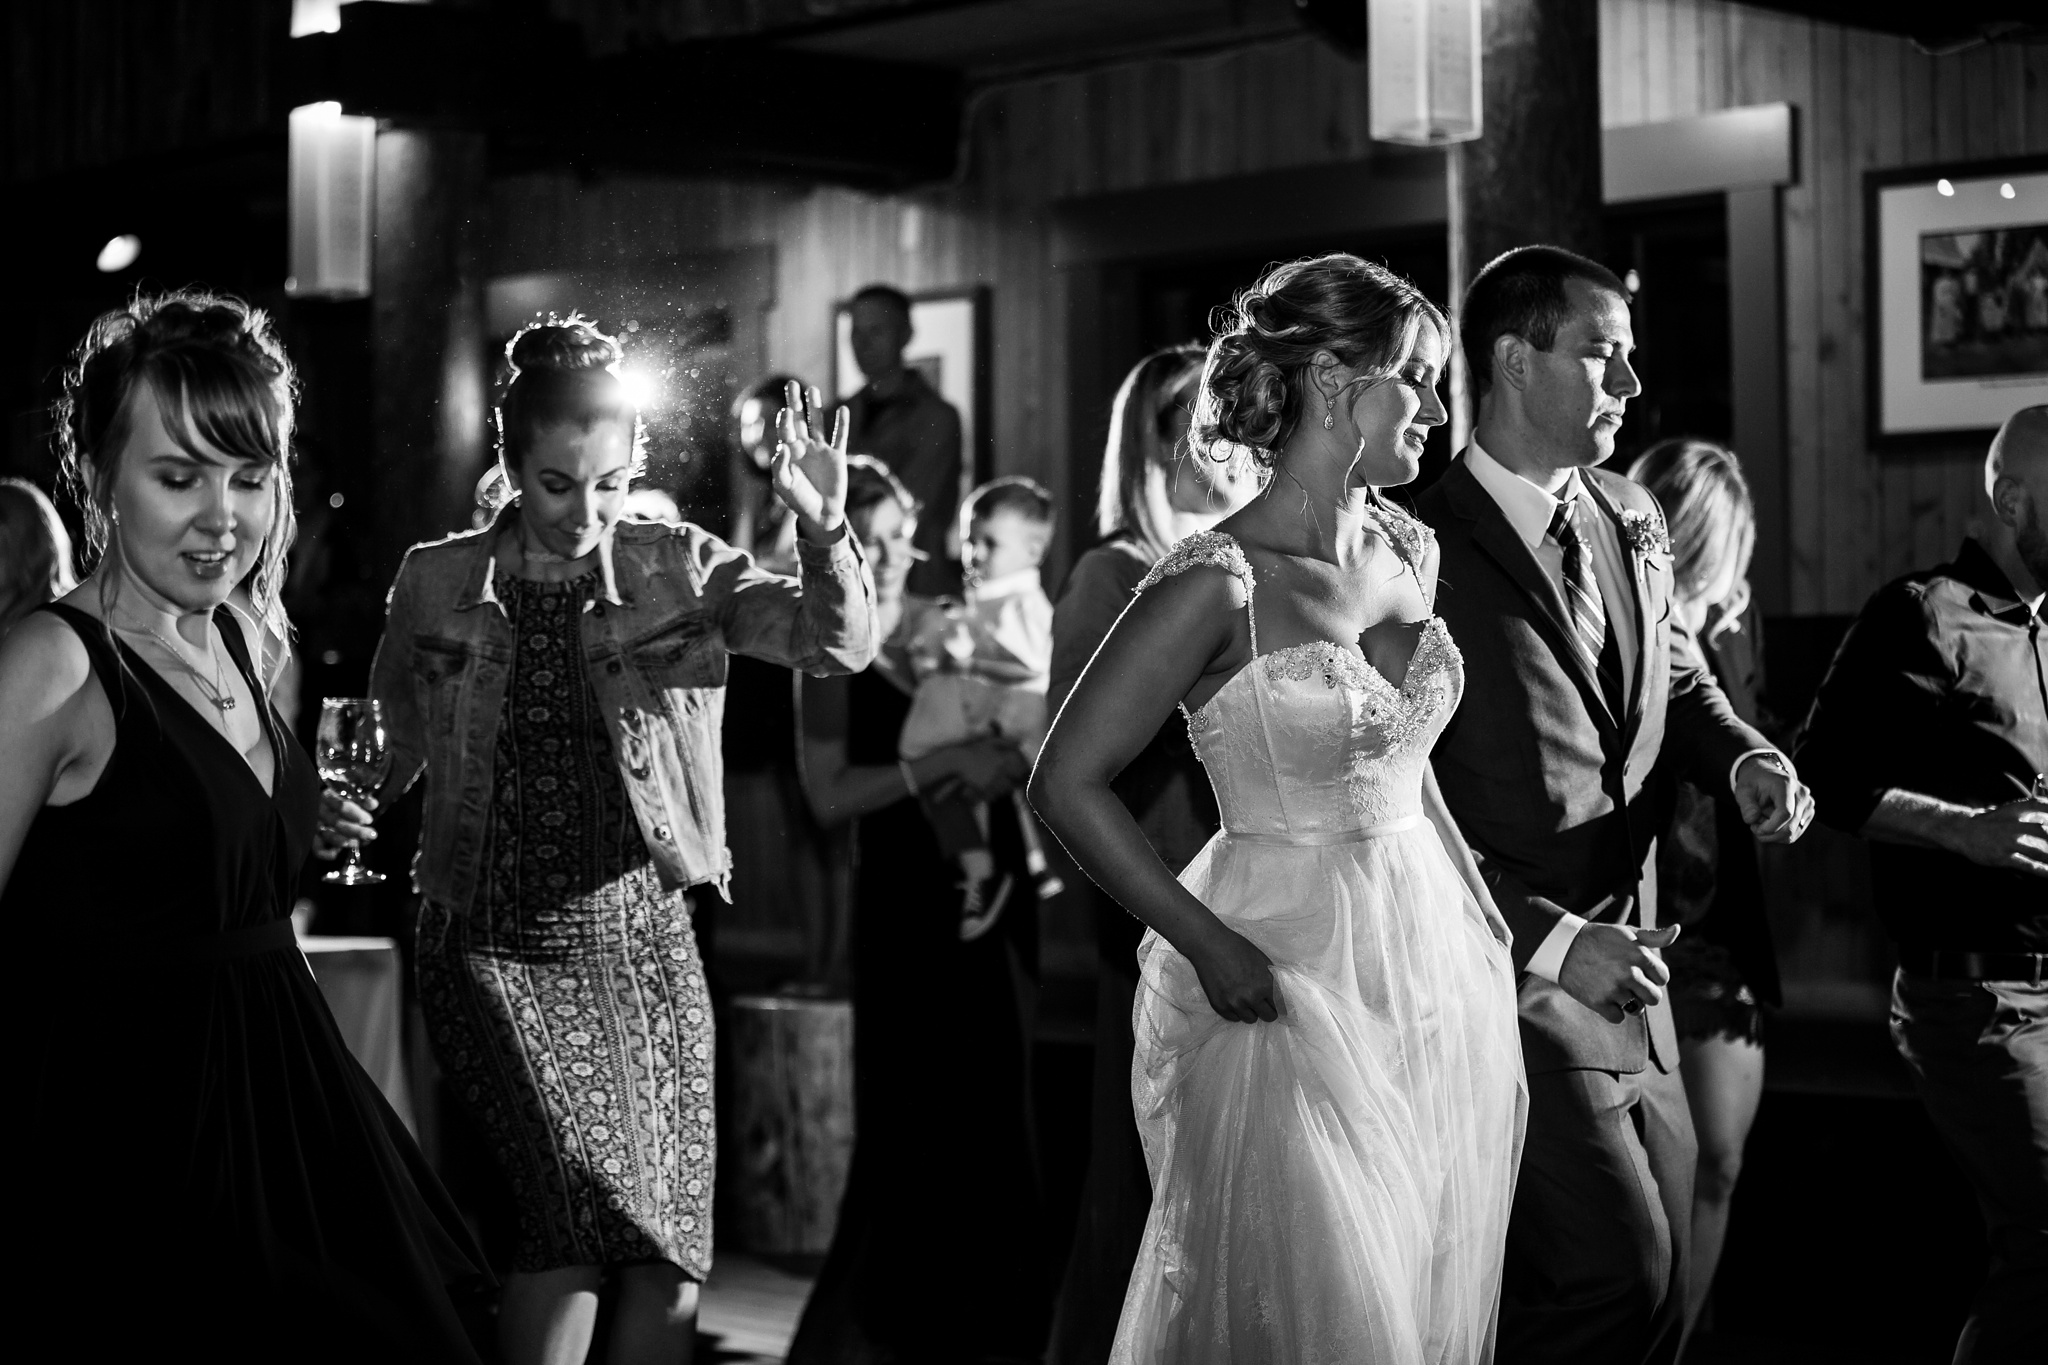 170819_blog_leslie_jeremy_wedding_bear_valley_lodge_arnold_danielle_alysse_photography_sacramento_photographer_deliver749_WEB.jpg